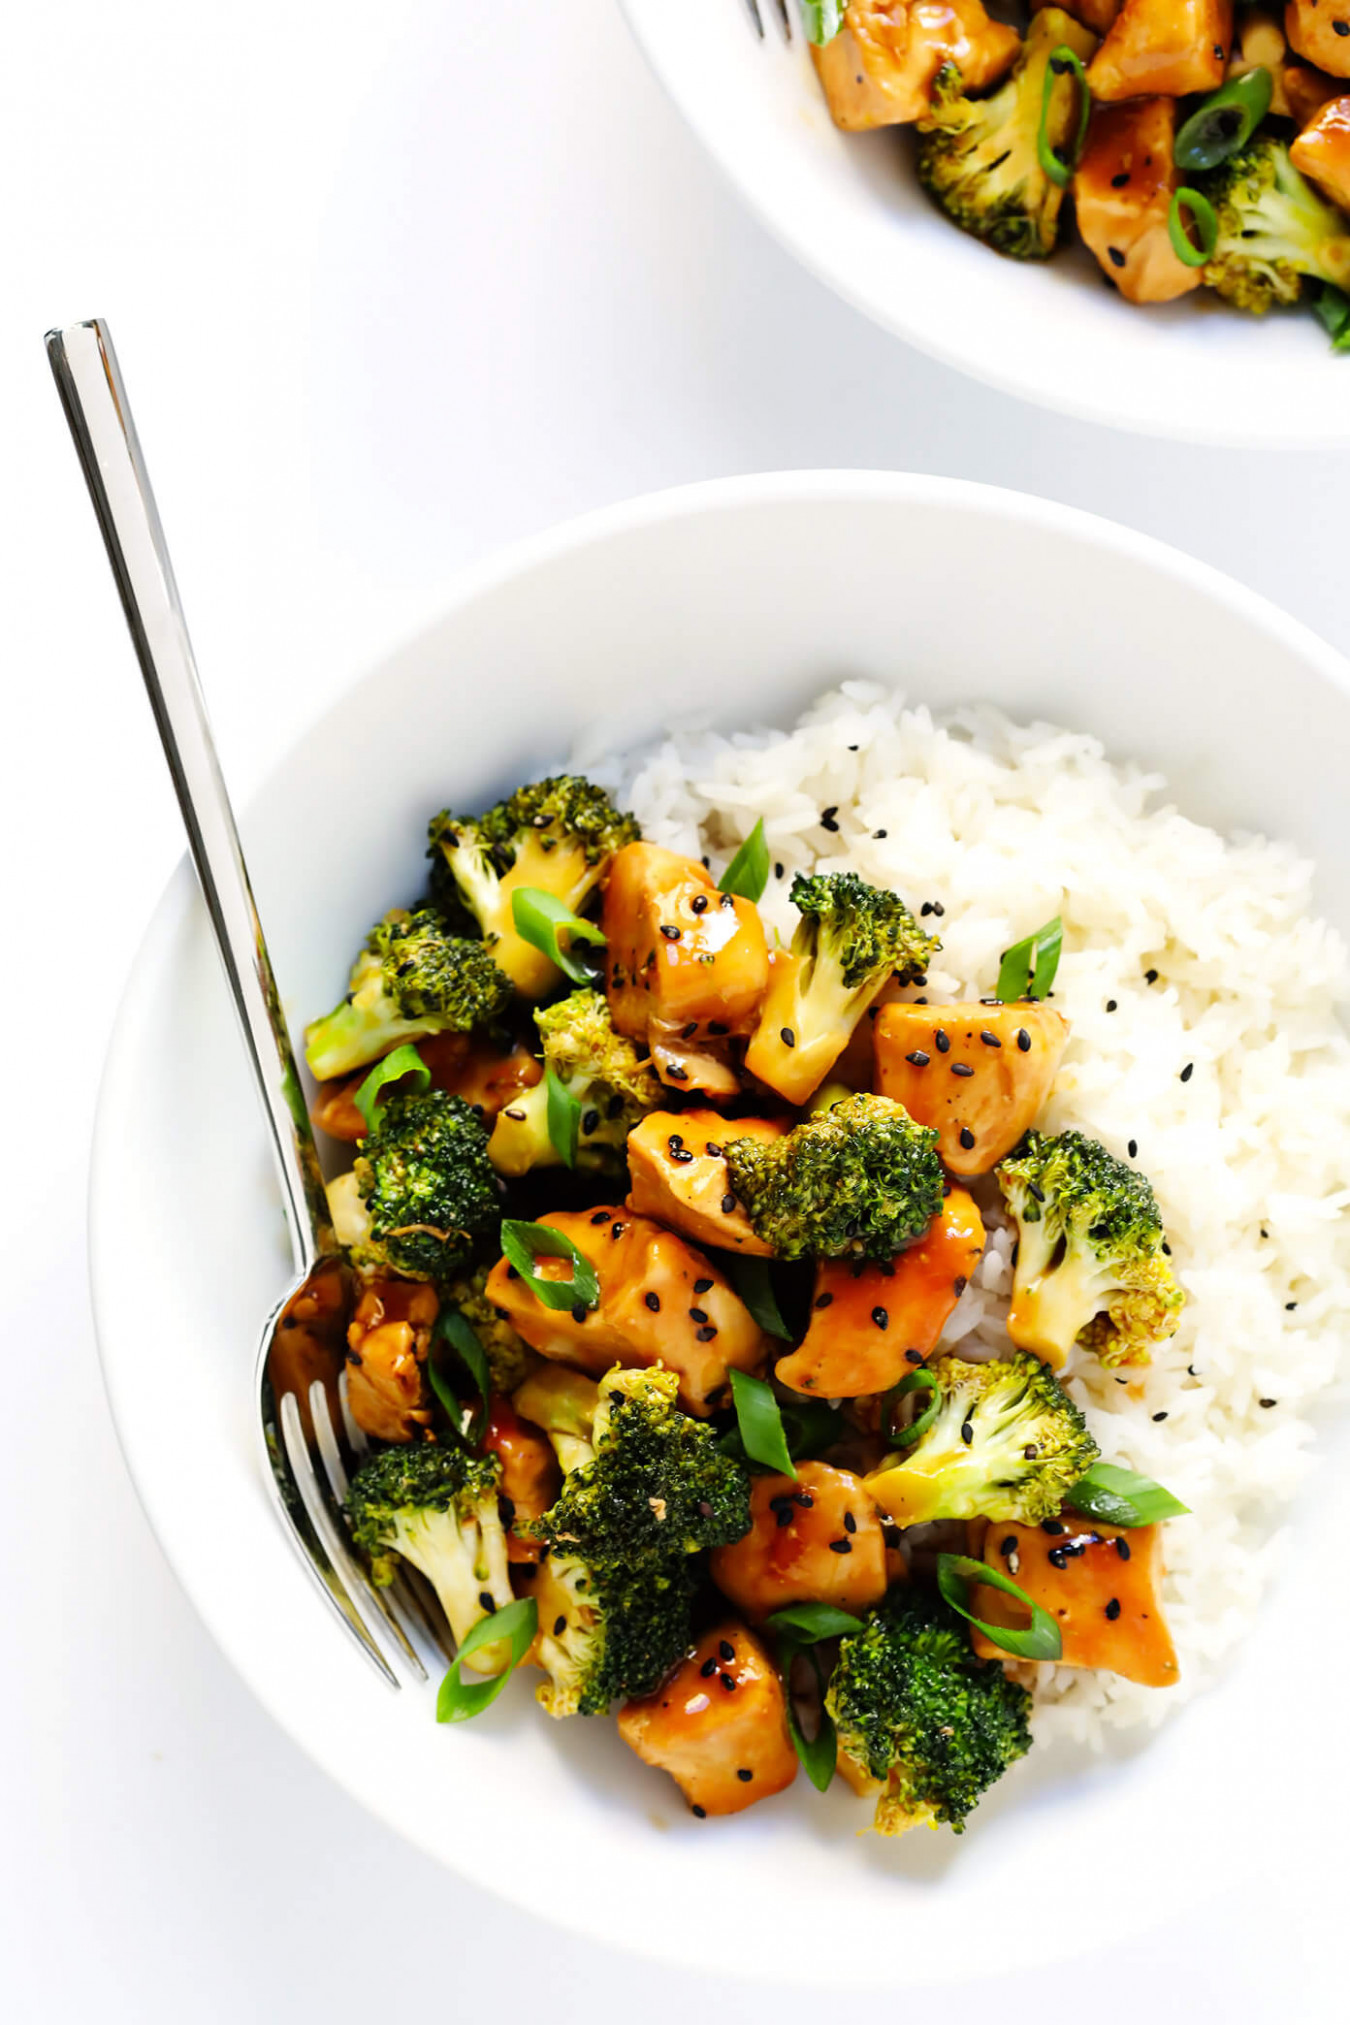 15-Minute Chicken and Broccoli - chicken recipes quick and healthy